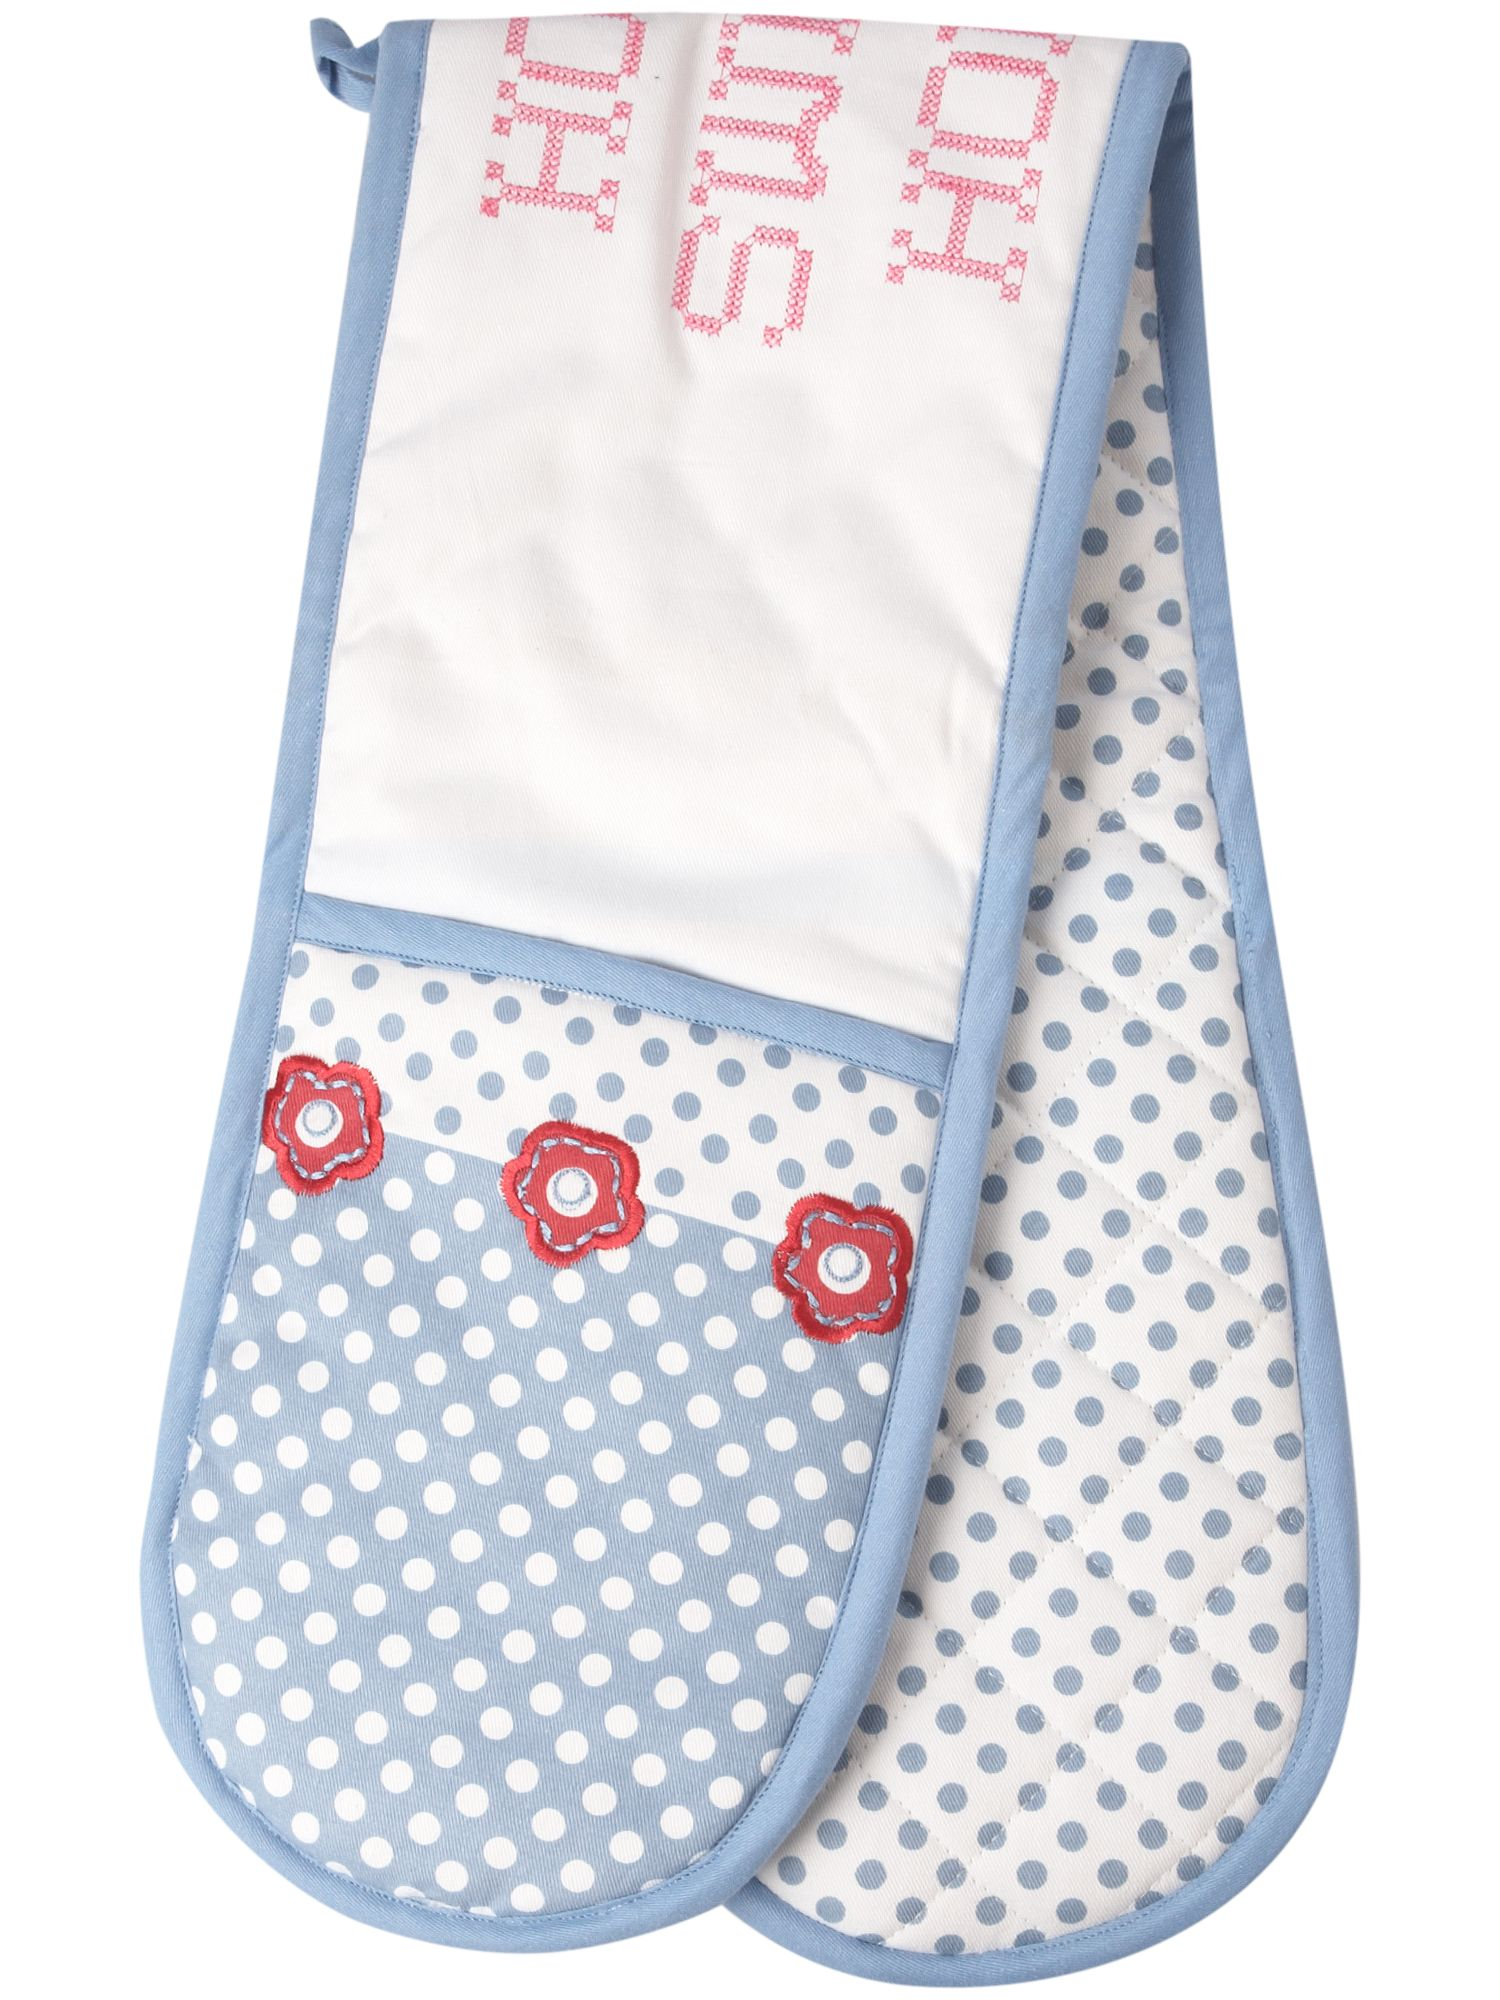 Linea Home Sweet Home double oven glove